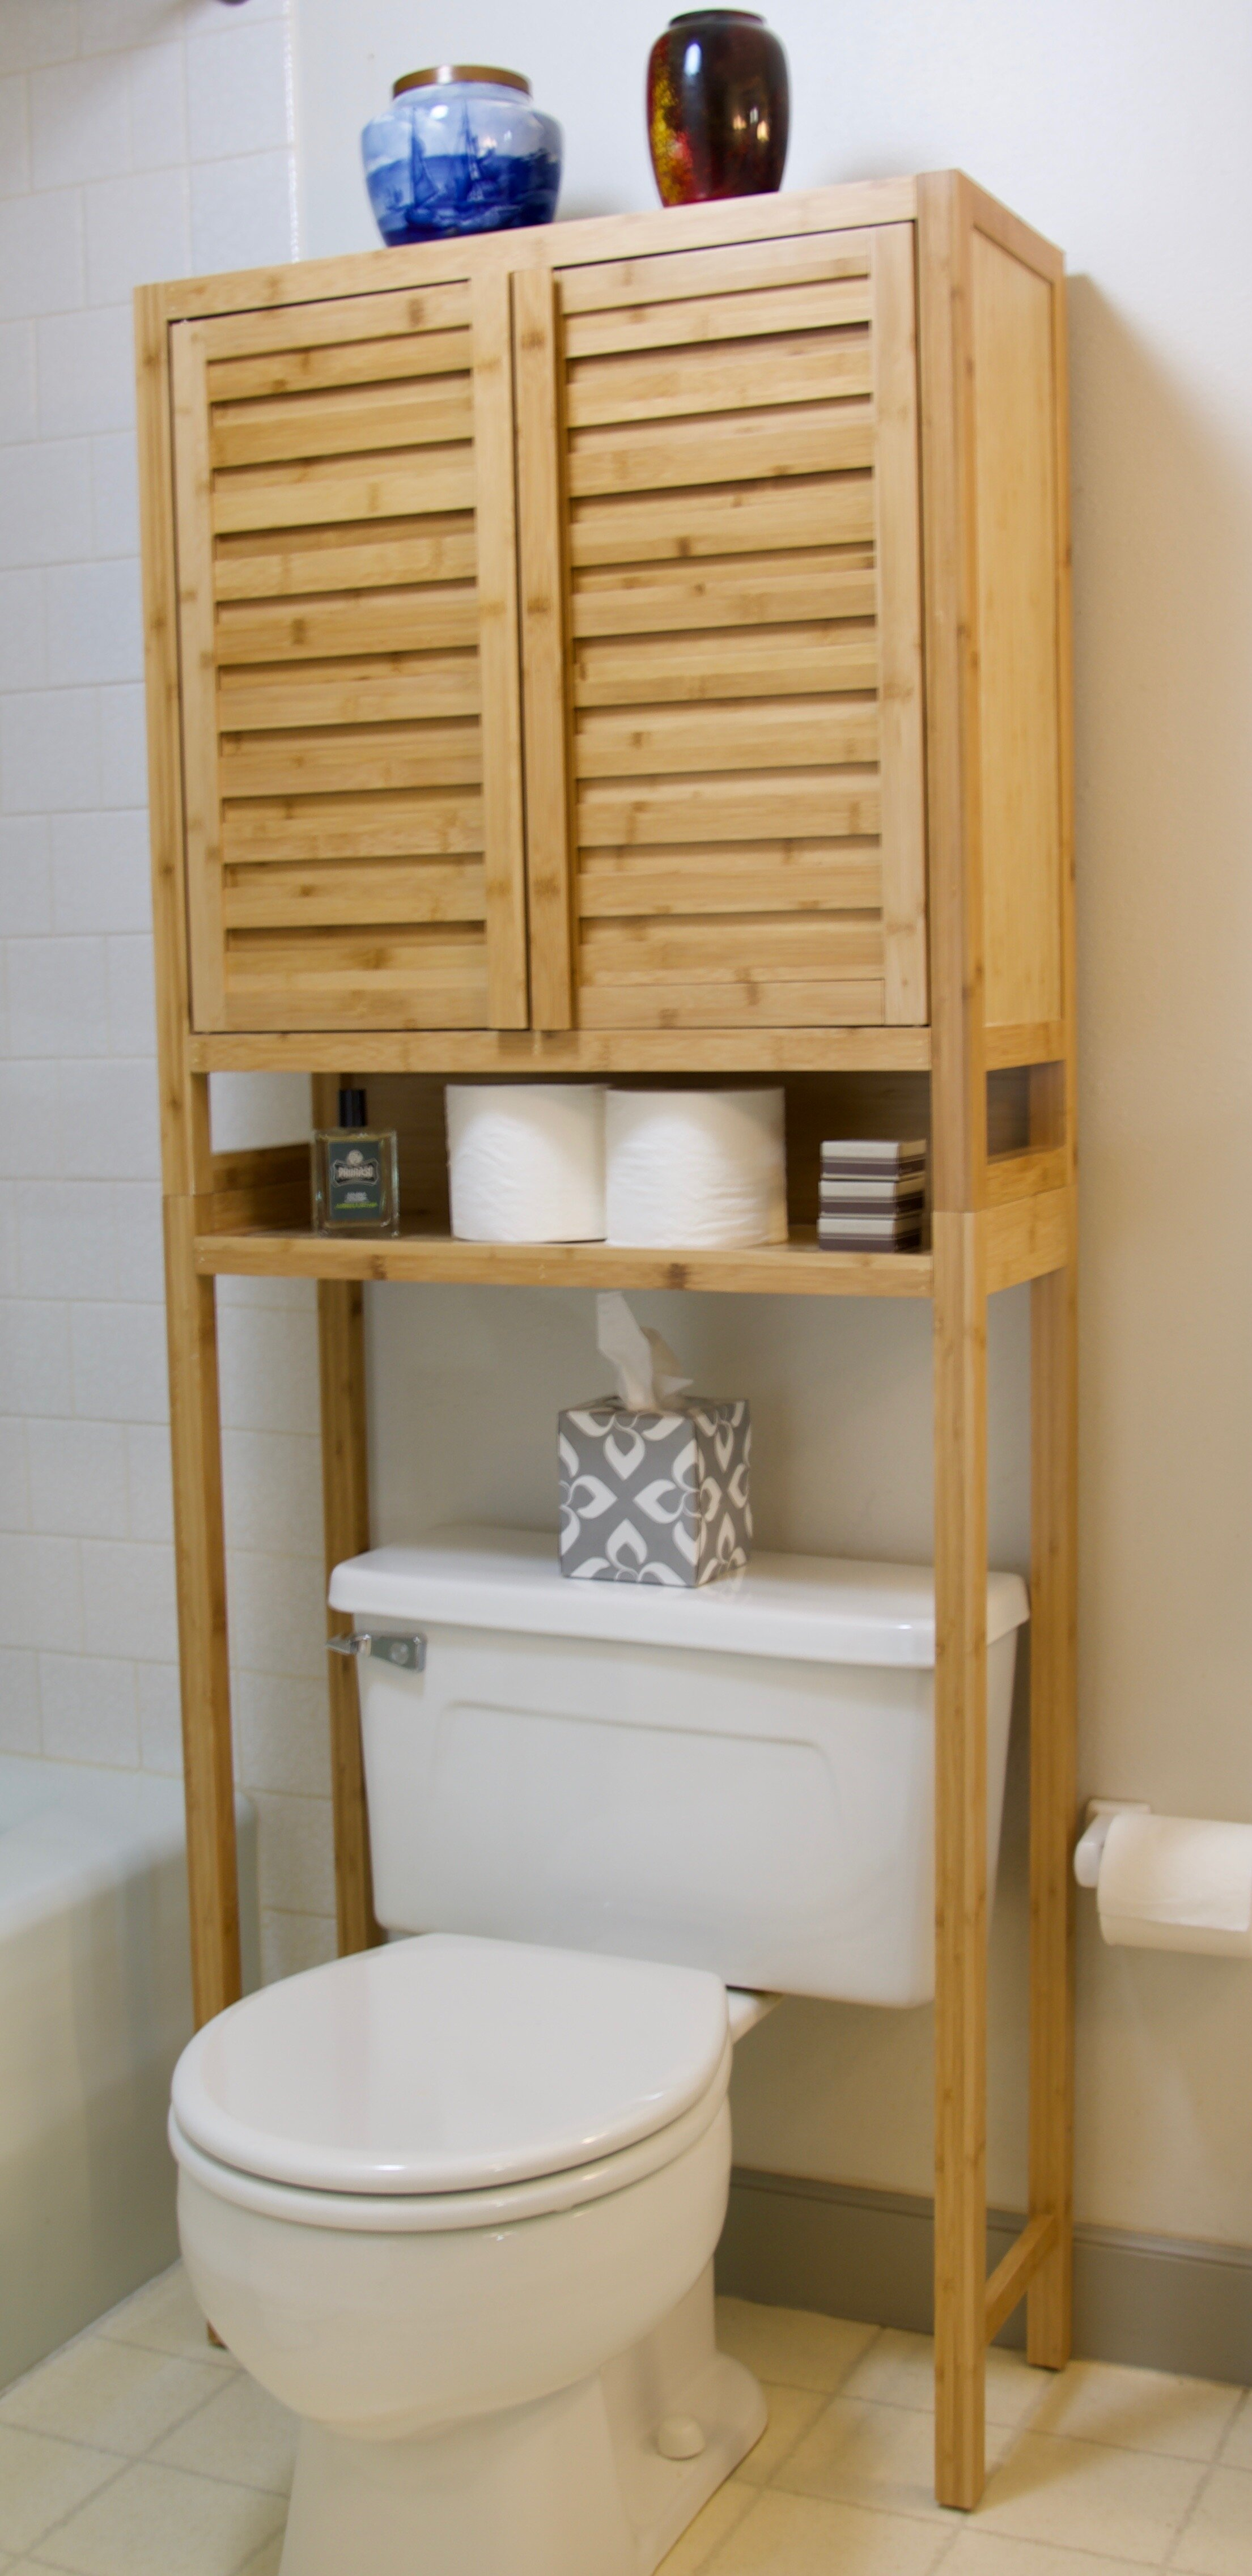 Over the toilet storage in natural wood